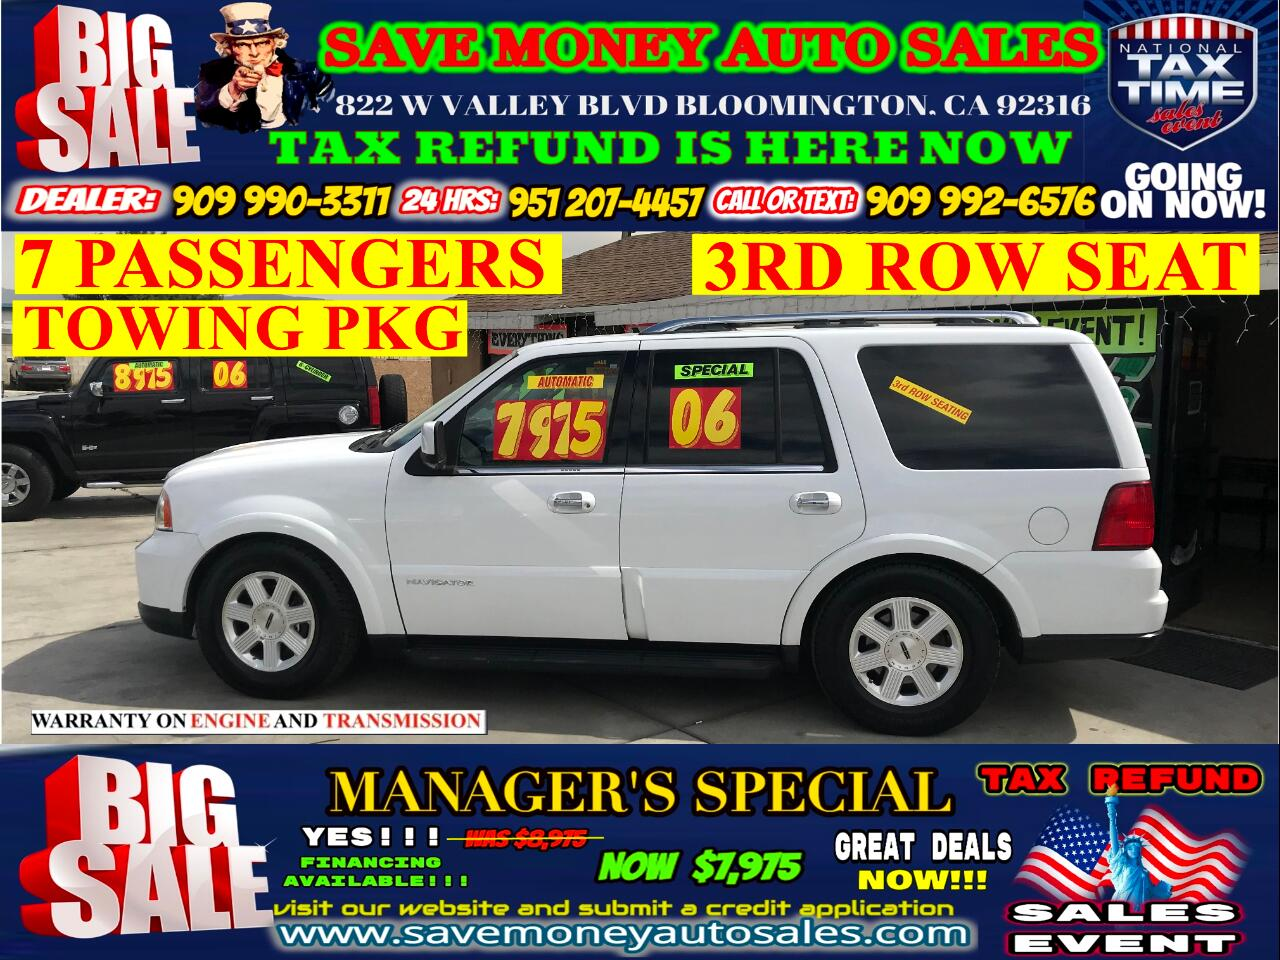 2006 Lincoln Navigator LUXURY>7 PASSENGERS>TOWING PKG> EXTRA CLEAN